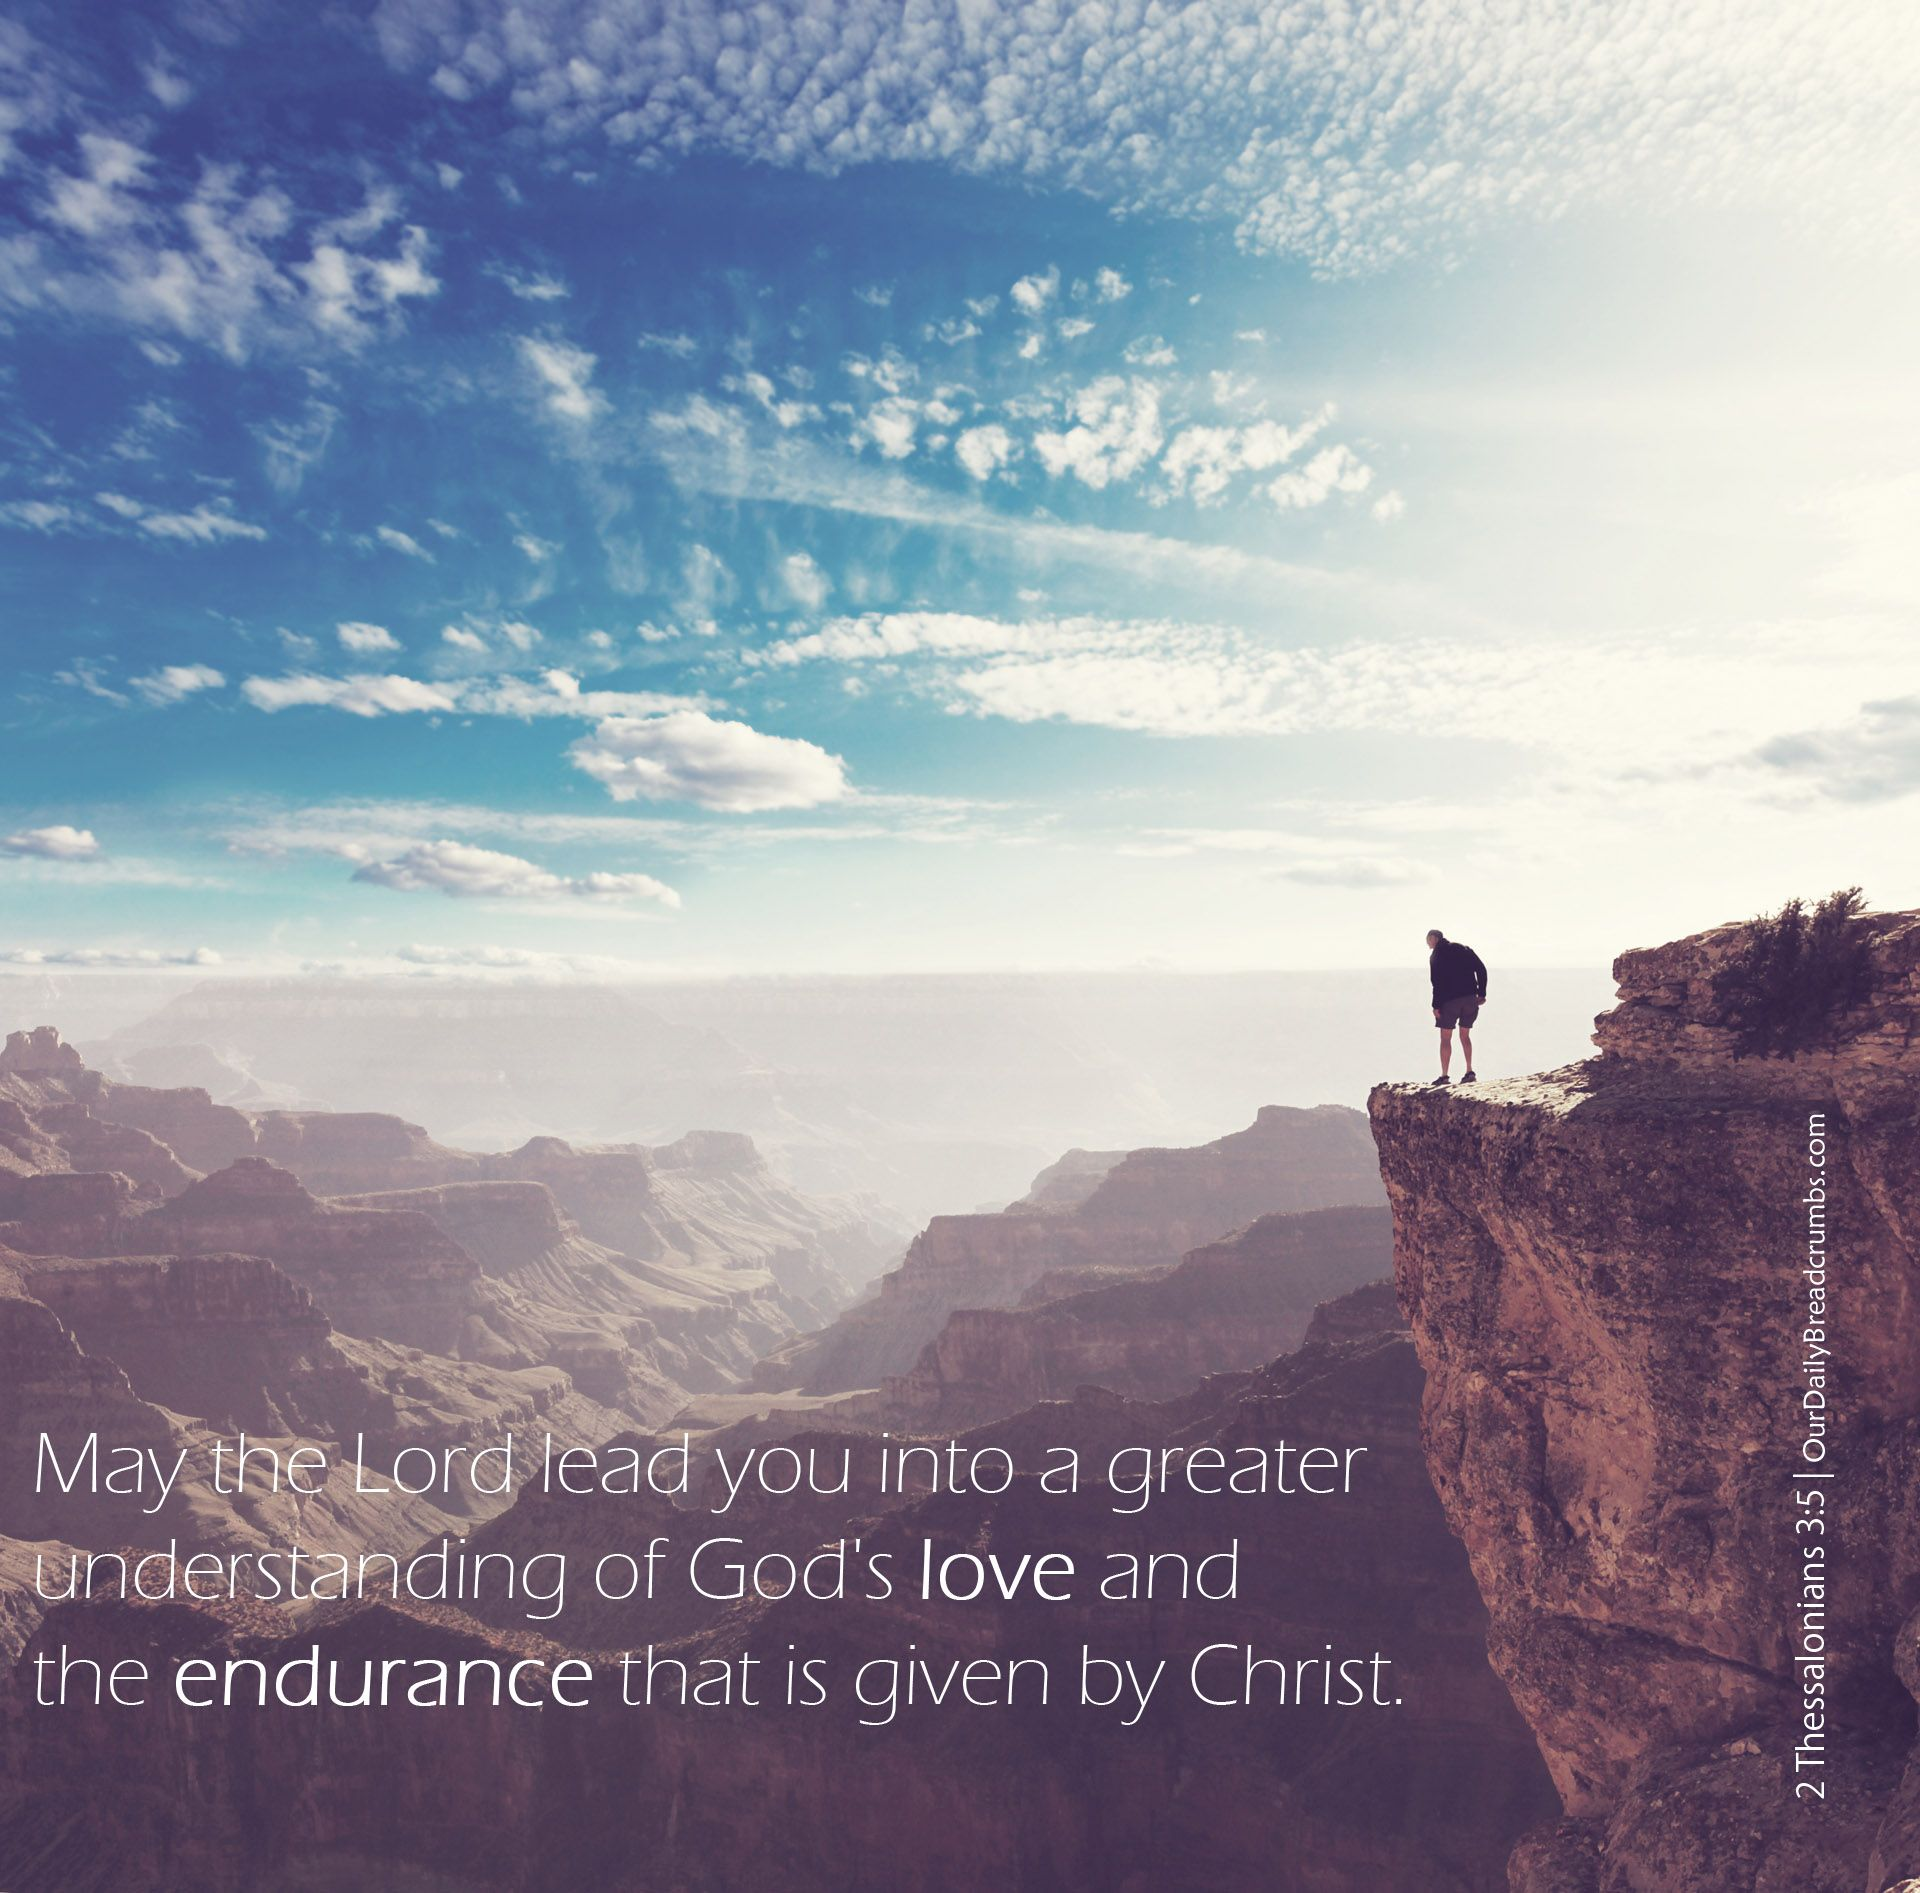 May the Lord lead you into a greater understanding of God's love and the endurance that is given by Christ. 2 thessalonians 3:5  #GoodNewsTranslation, #JesusChrist, #Love  https://www.ourdailybreadcrumbs.com/2-thessalonians-3-5/